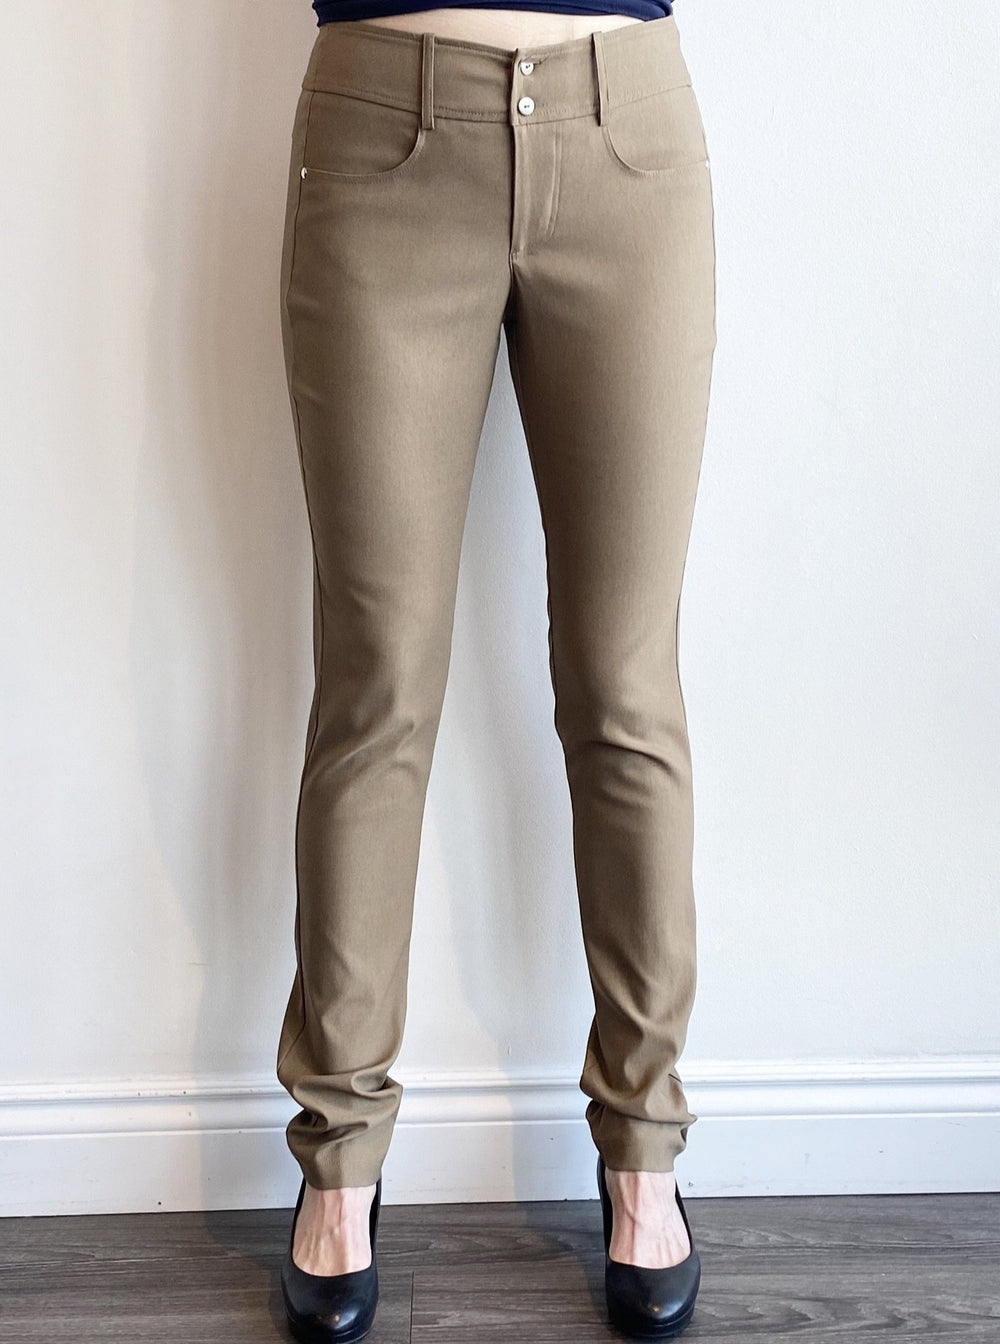 Brenda Beddome Stretch Prada Twill Dress Pants in Taupe